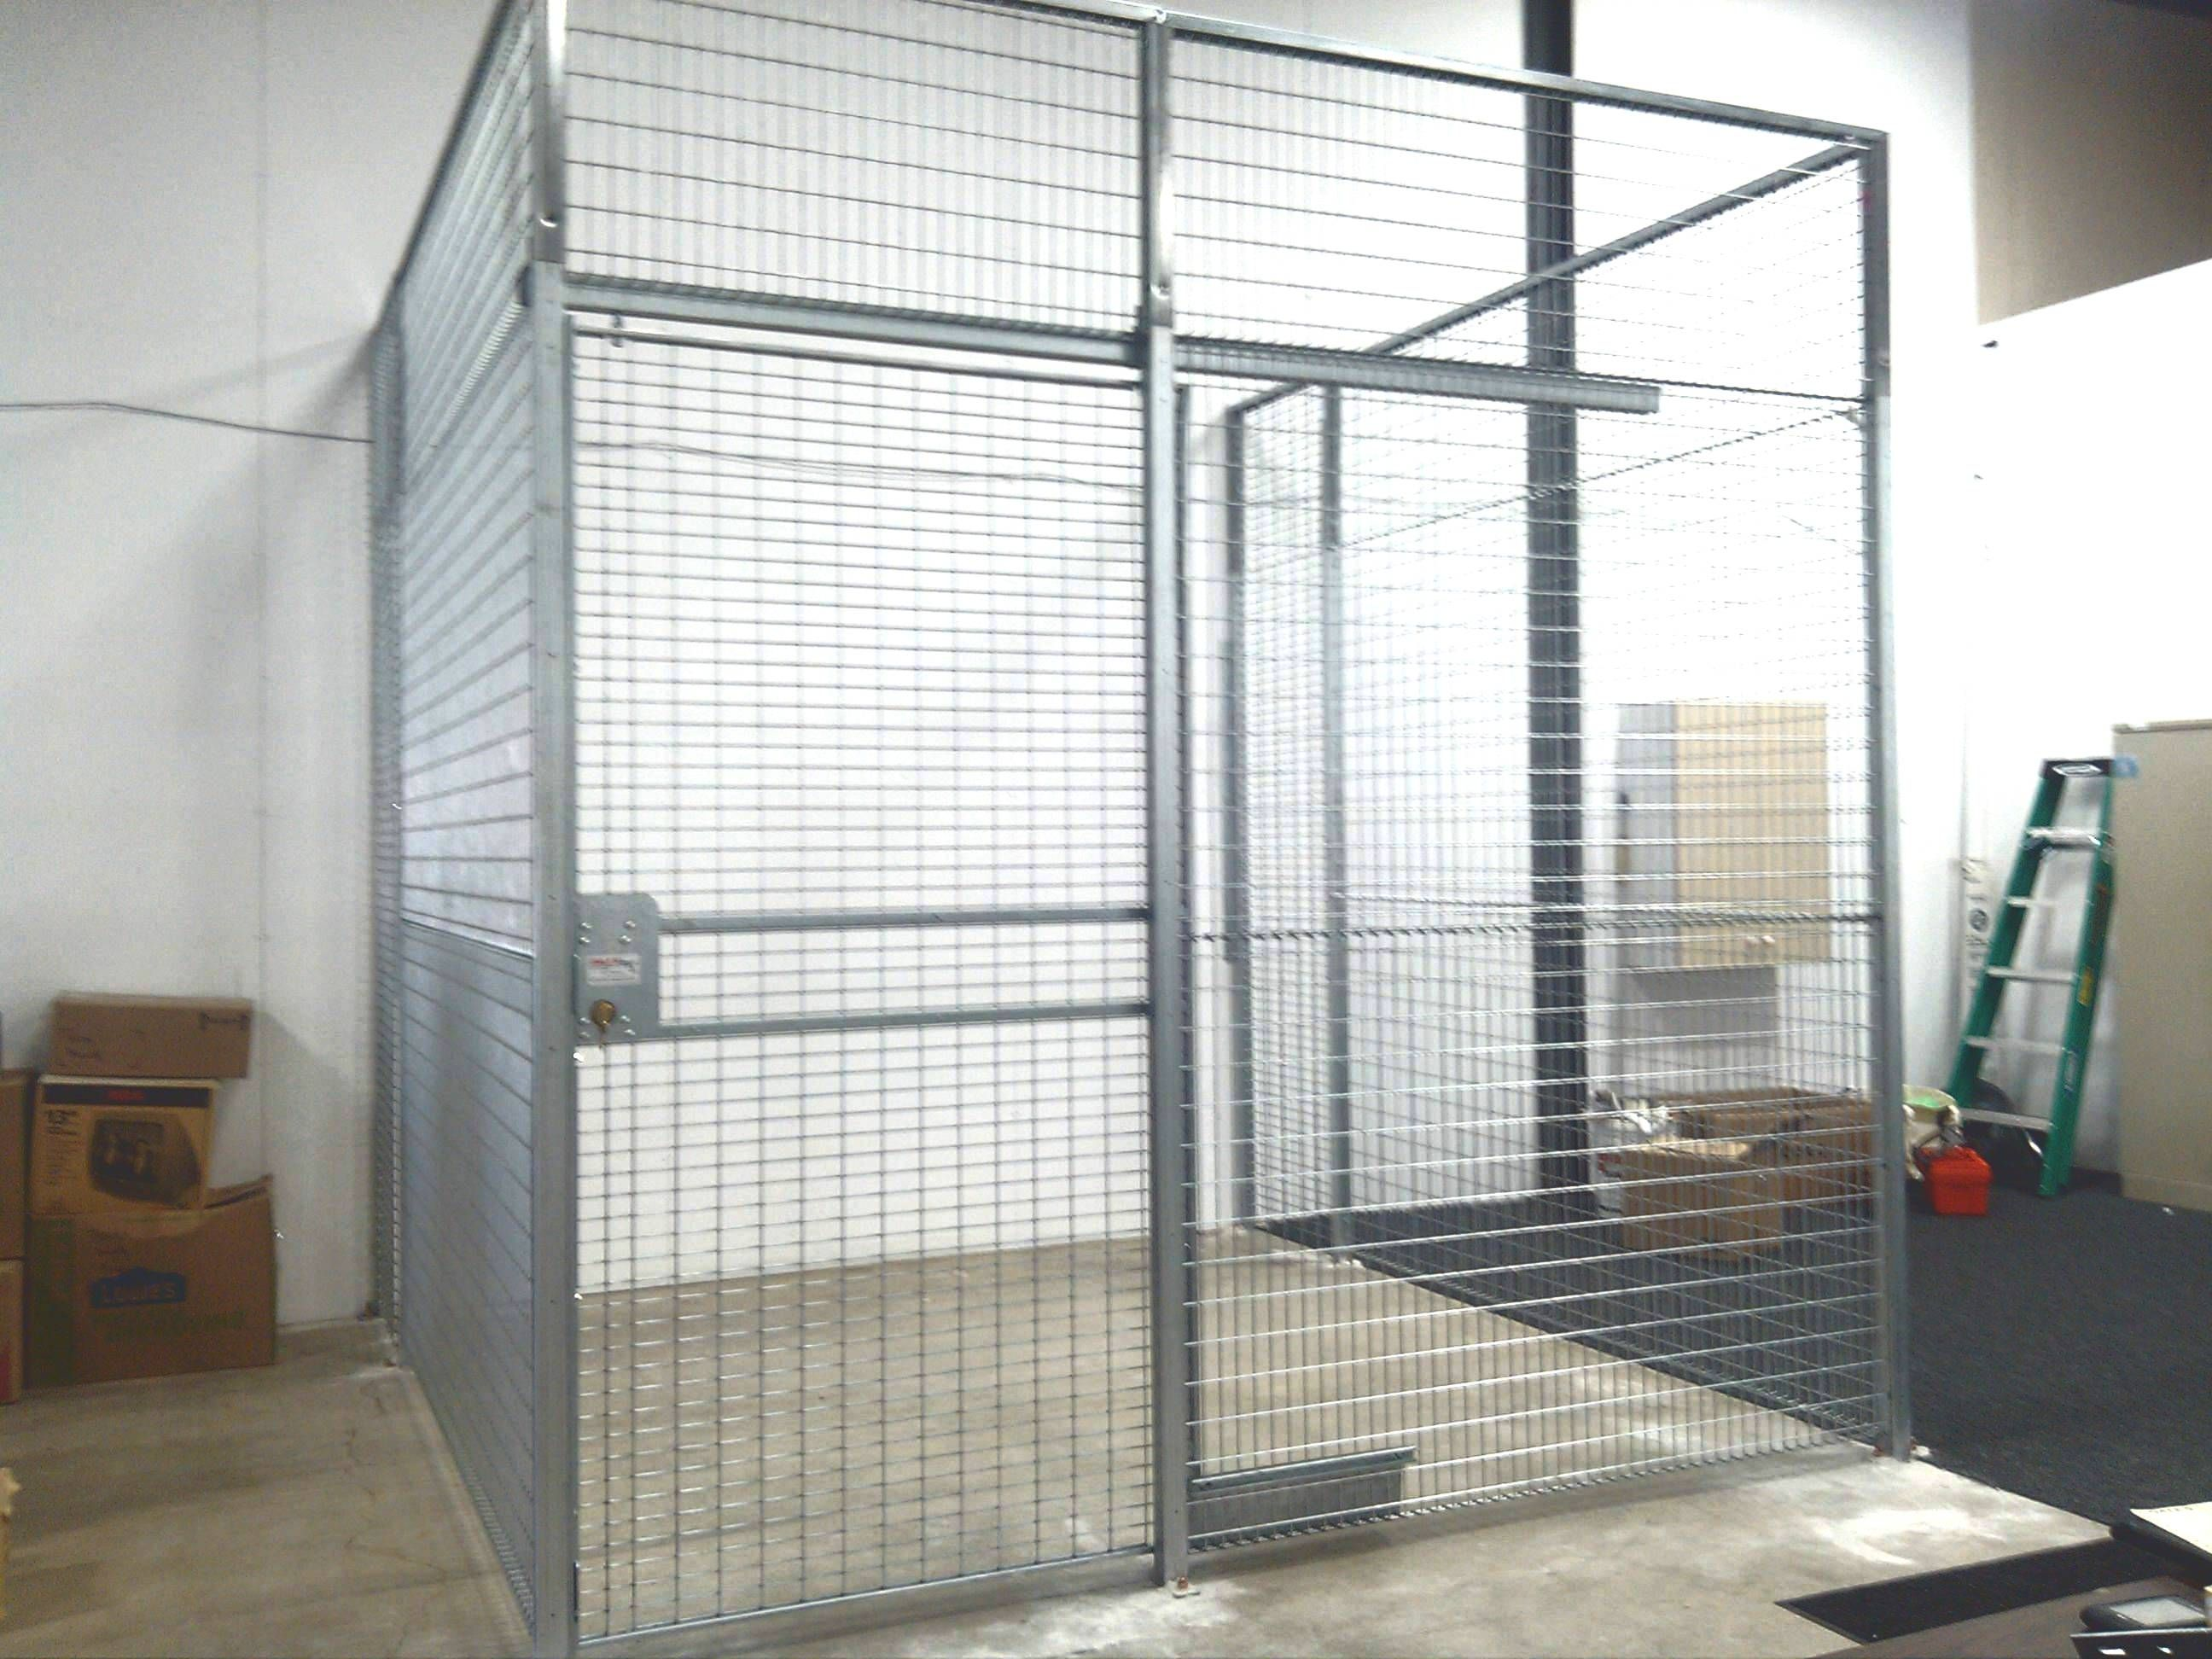 security cage edison nj  security cages installed in raritan center  gales industrial  10w x 10d